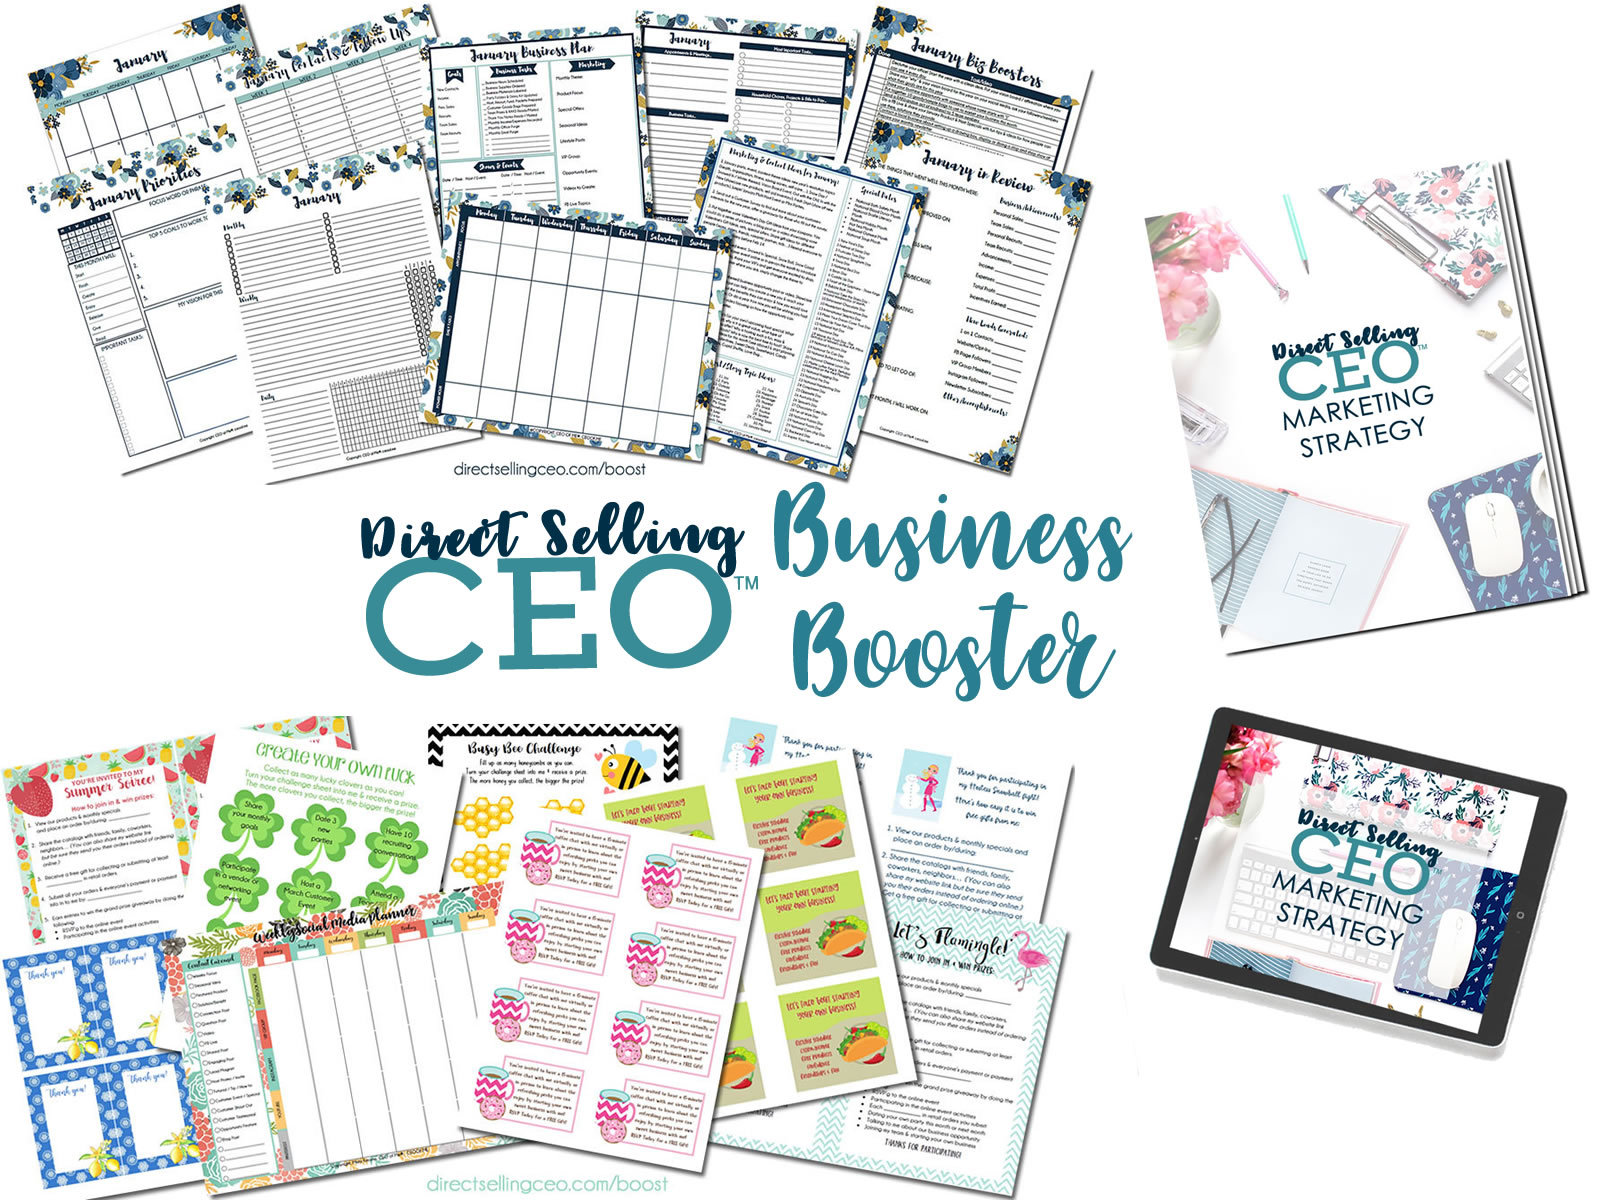 Direct Selling CEO Business Booster Marketing Training and Content Bundles